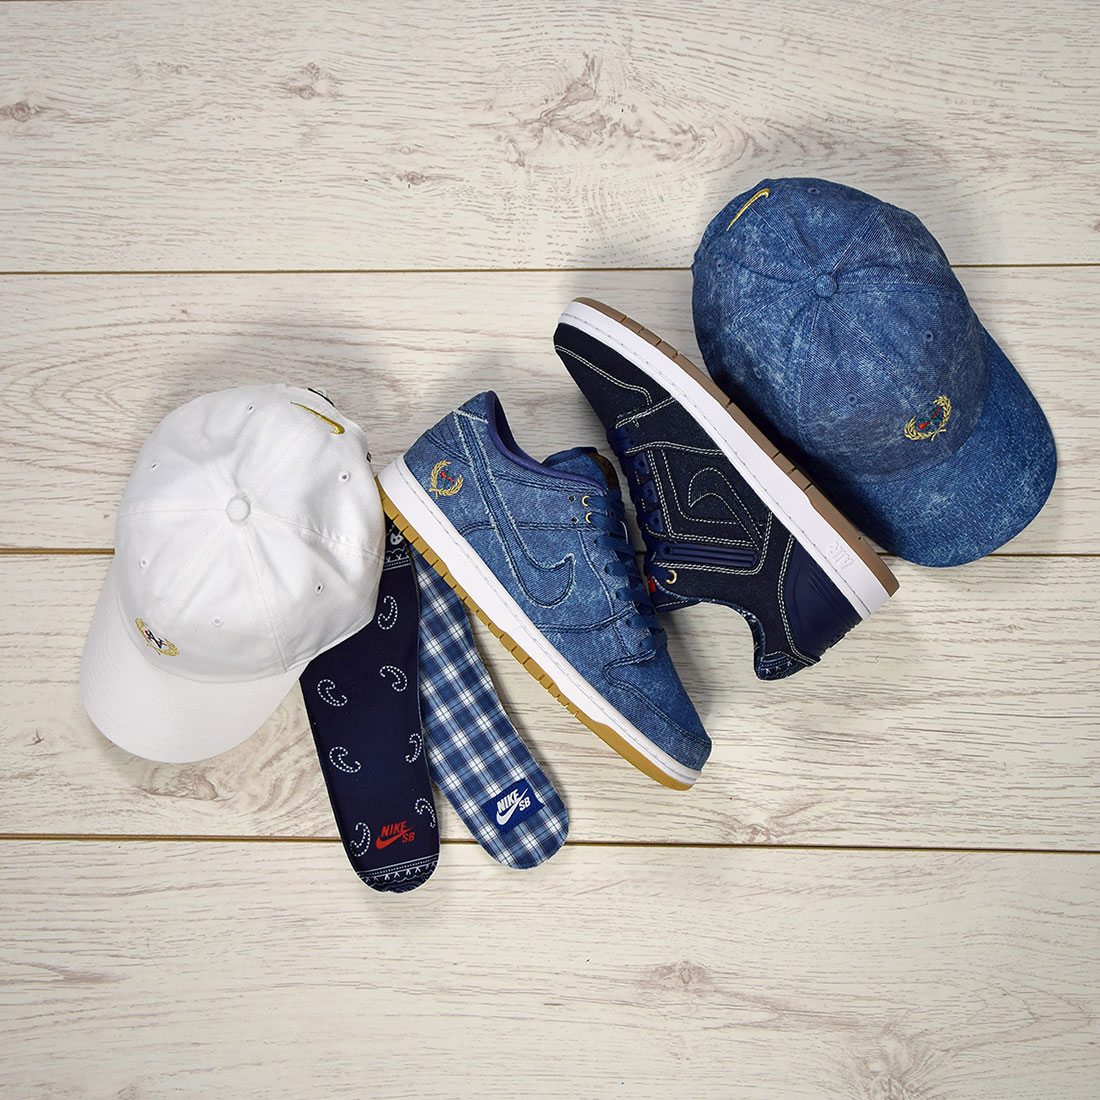 reputable site bc846 b5a72 Nike SB Denim Pack - Biggie vs Tupac - Sneakers.fr